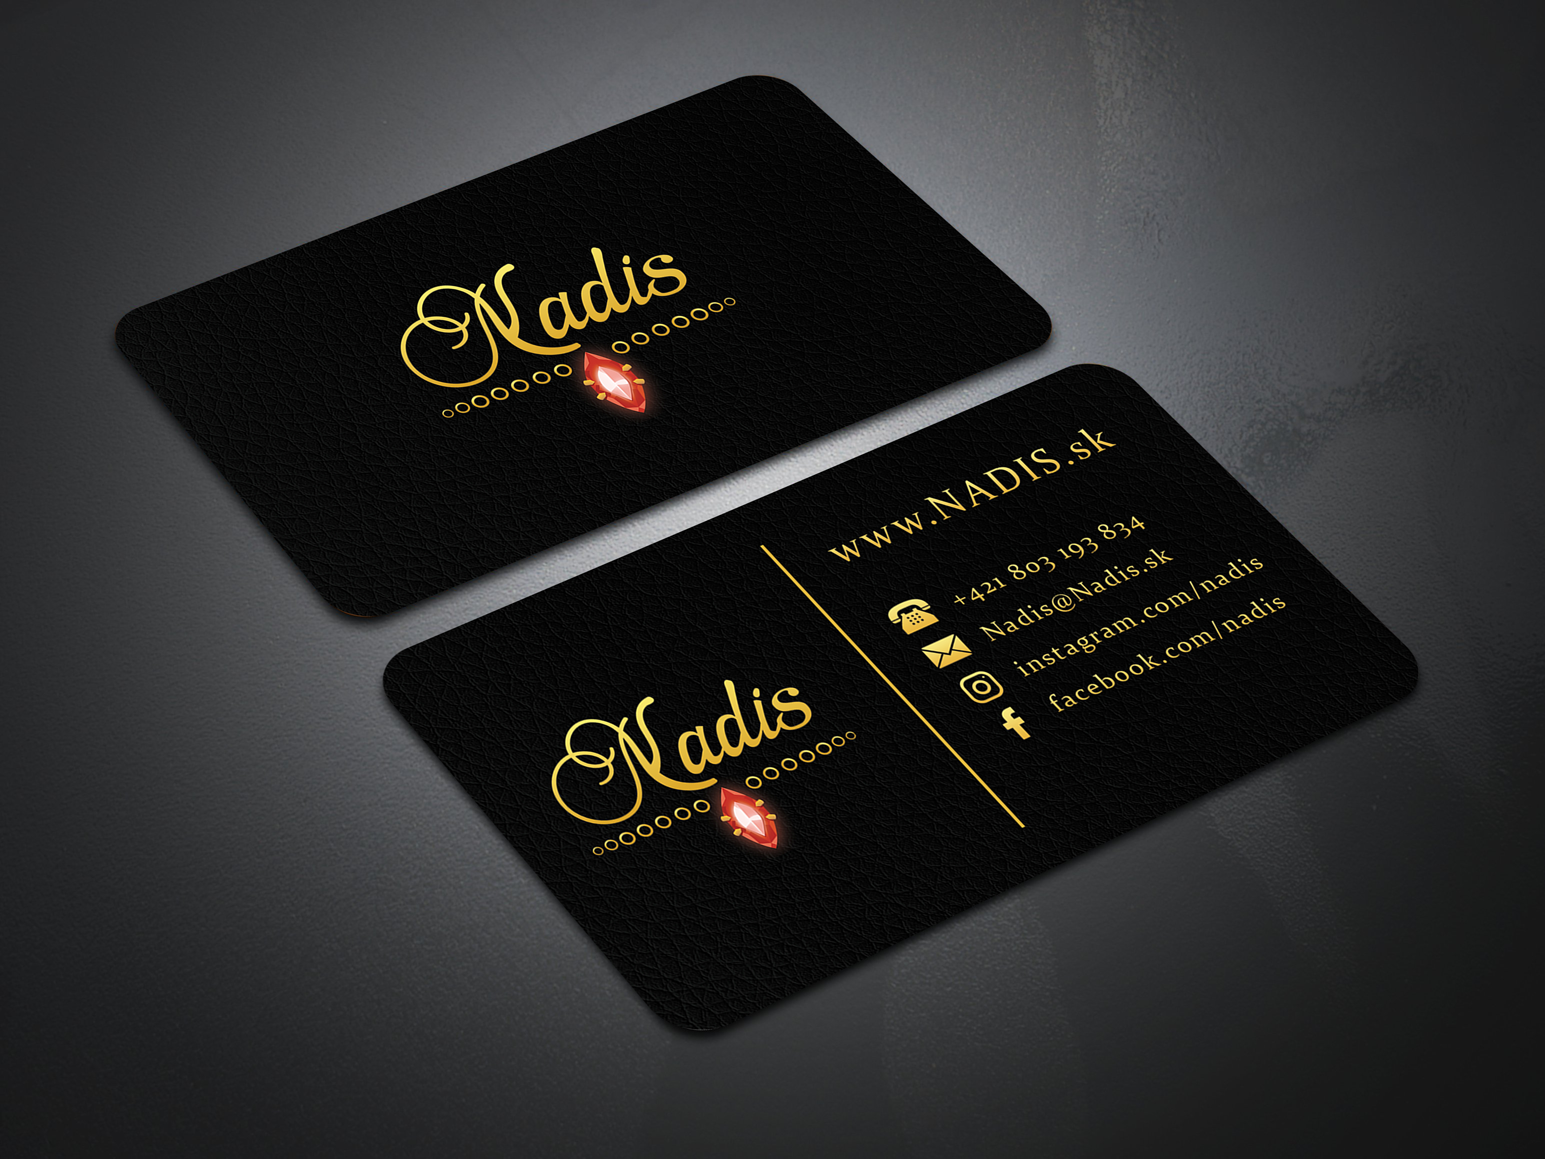 Nadis Luxury Business Card For A Company Named Nadis Gems Jewelry And Accessories Online S Luxury Business Cards Online Shop Accessories Jewelry Business